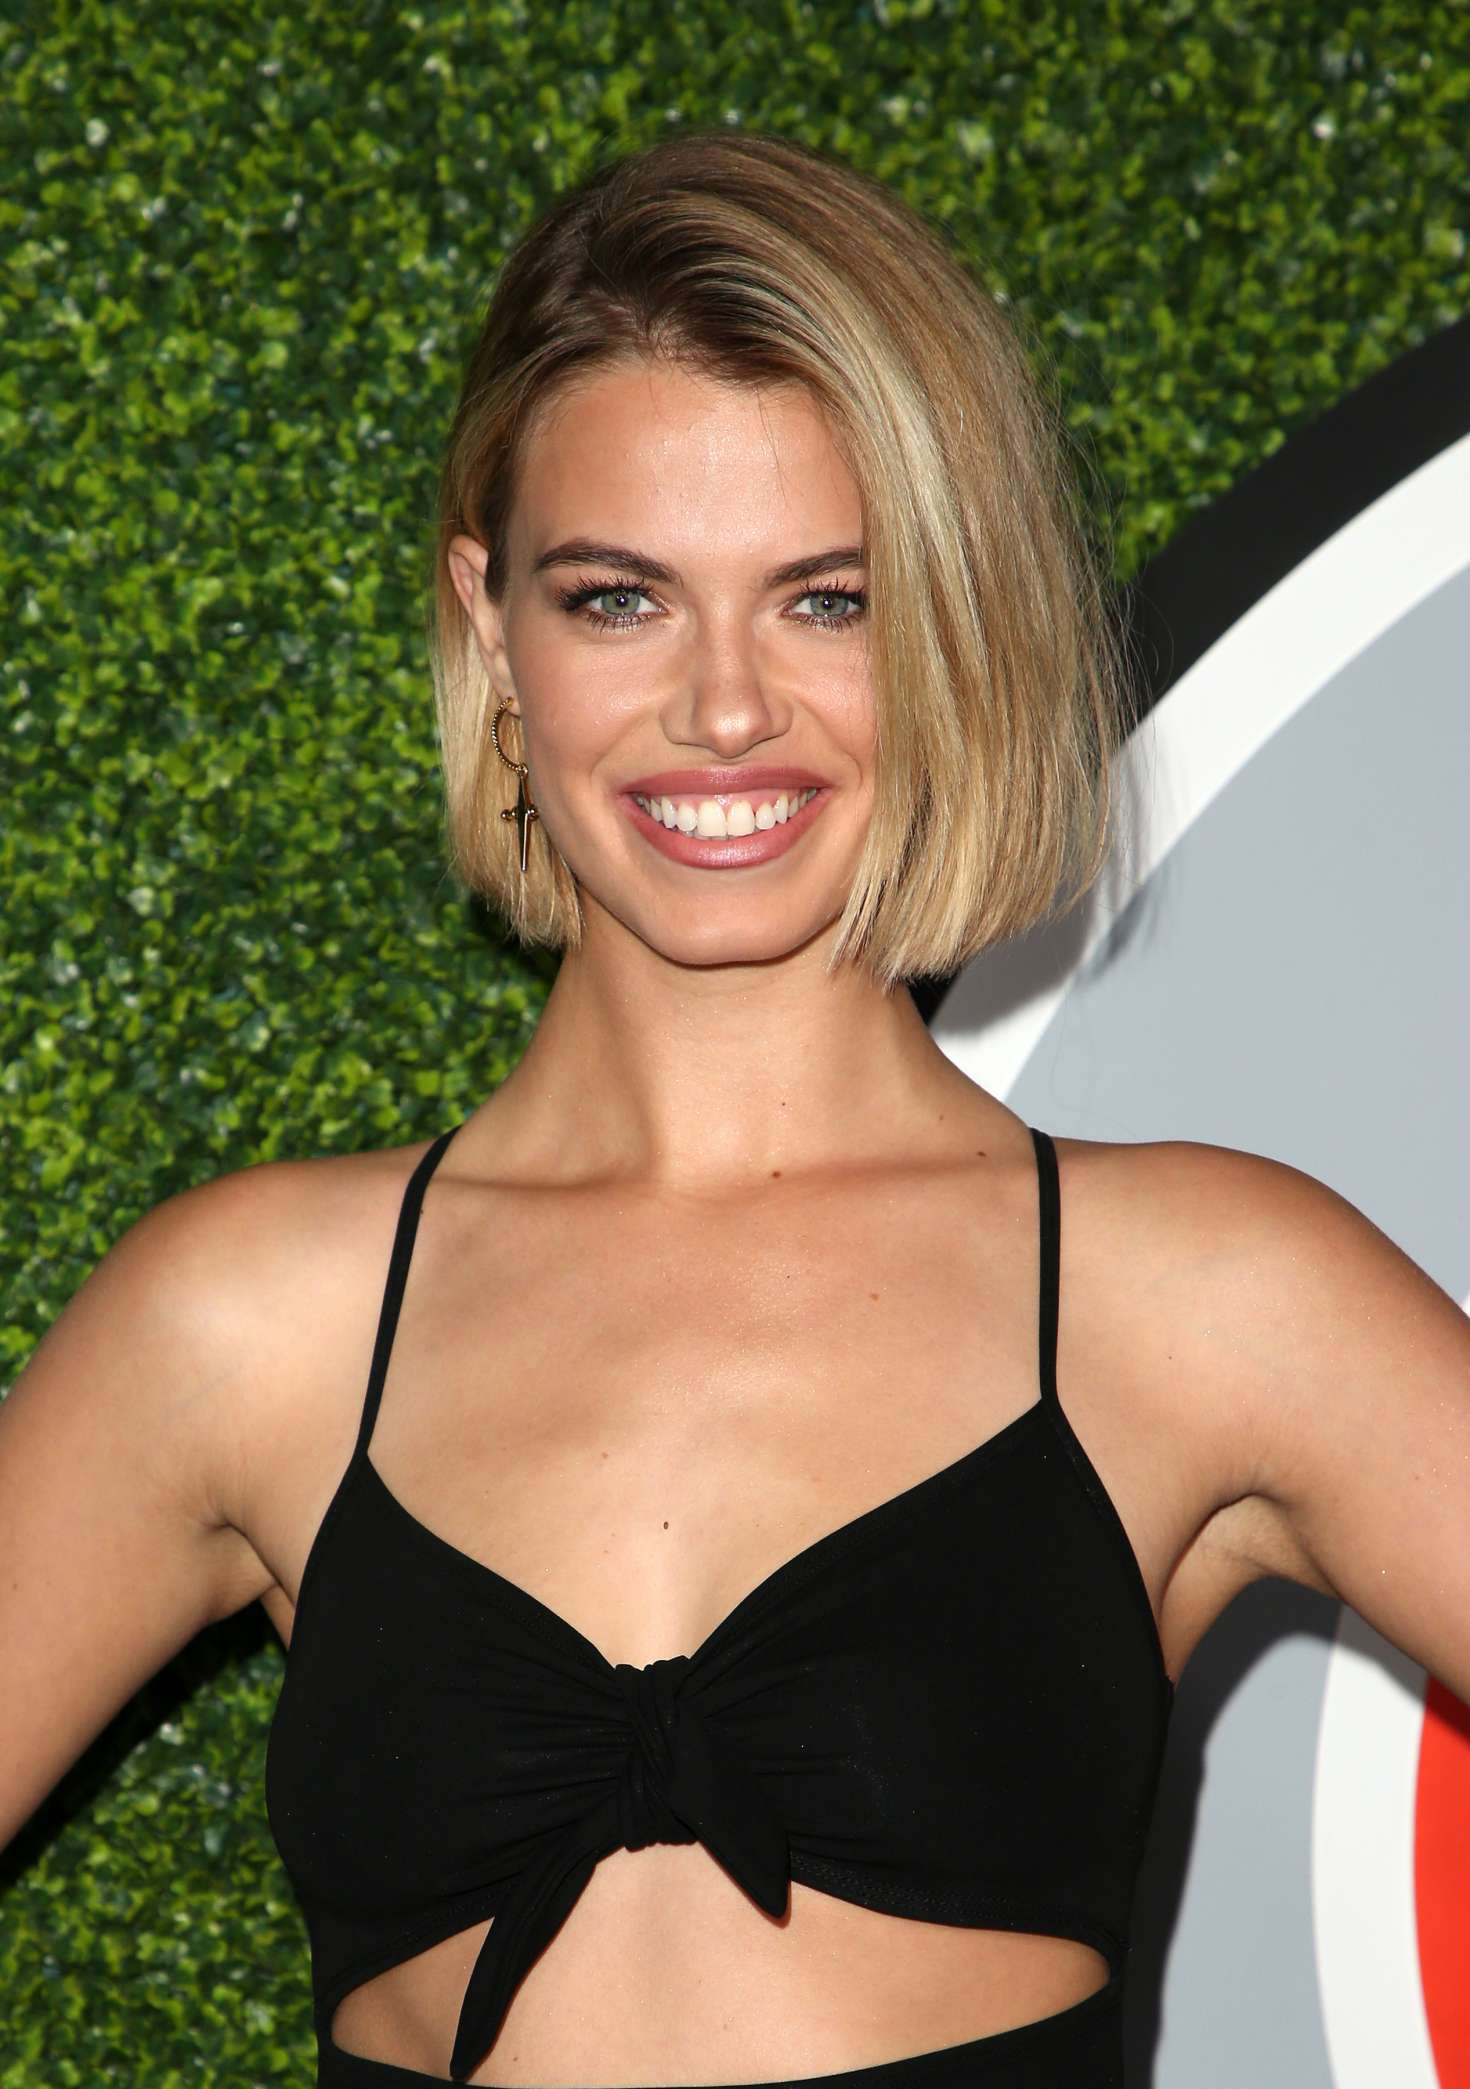 Hailey Clauson - 2017 GQ Men of the Year Awards in Los Angeles